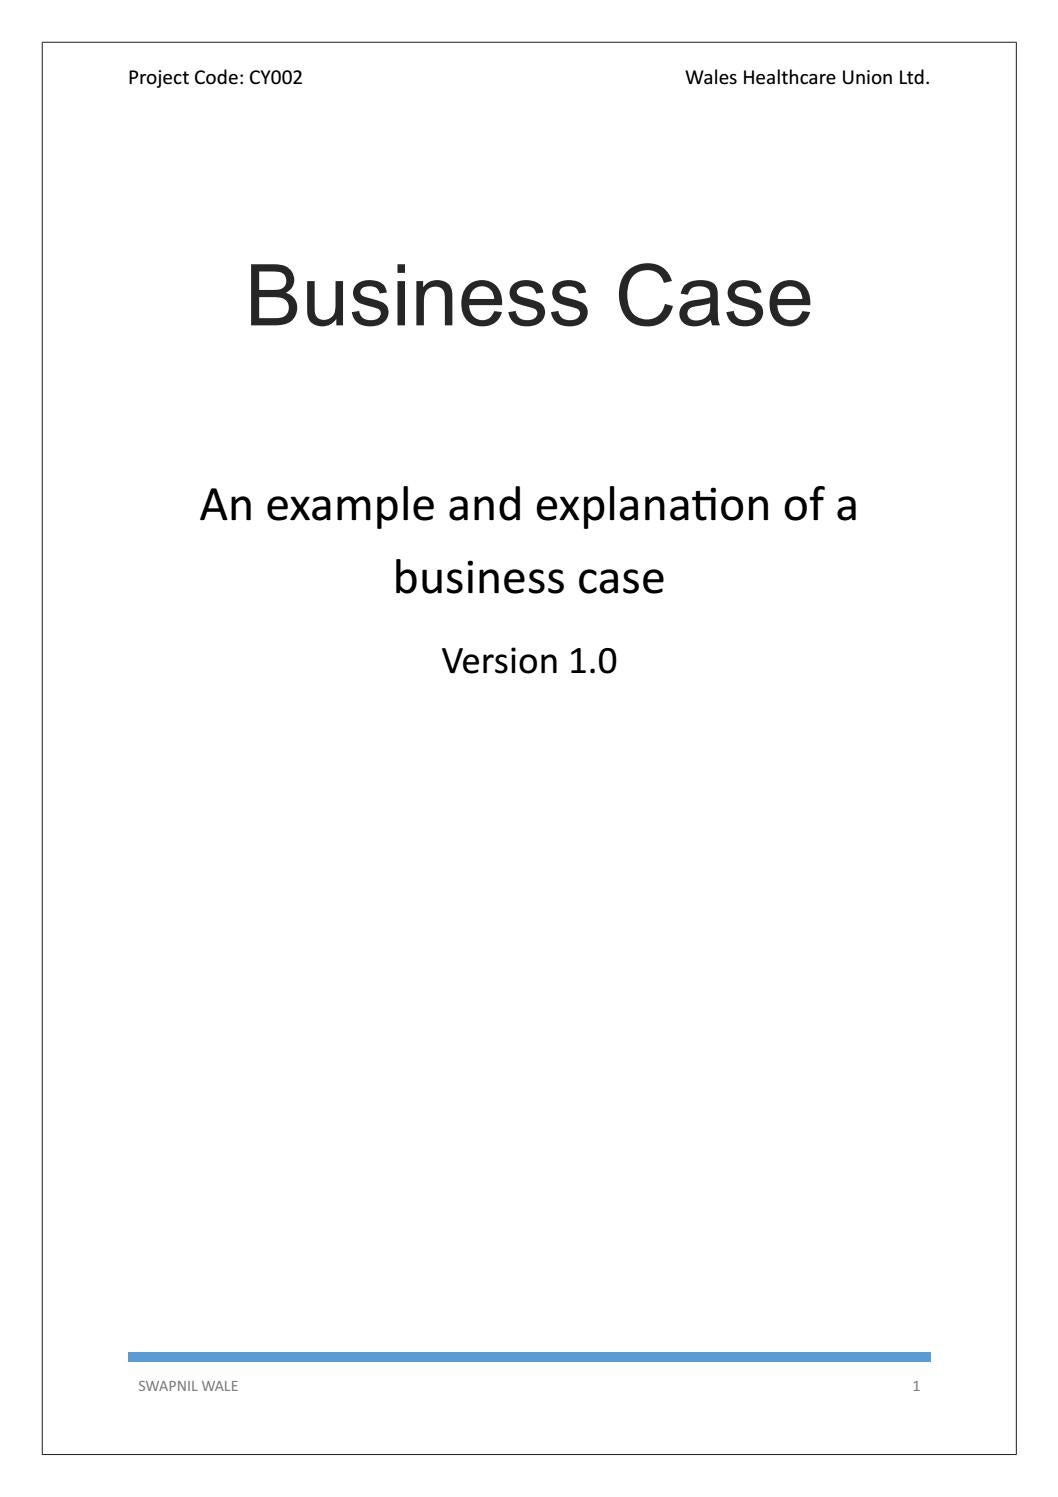 Project Management Business Case Template By Techno Pm Issuu